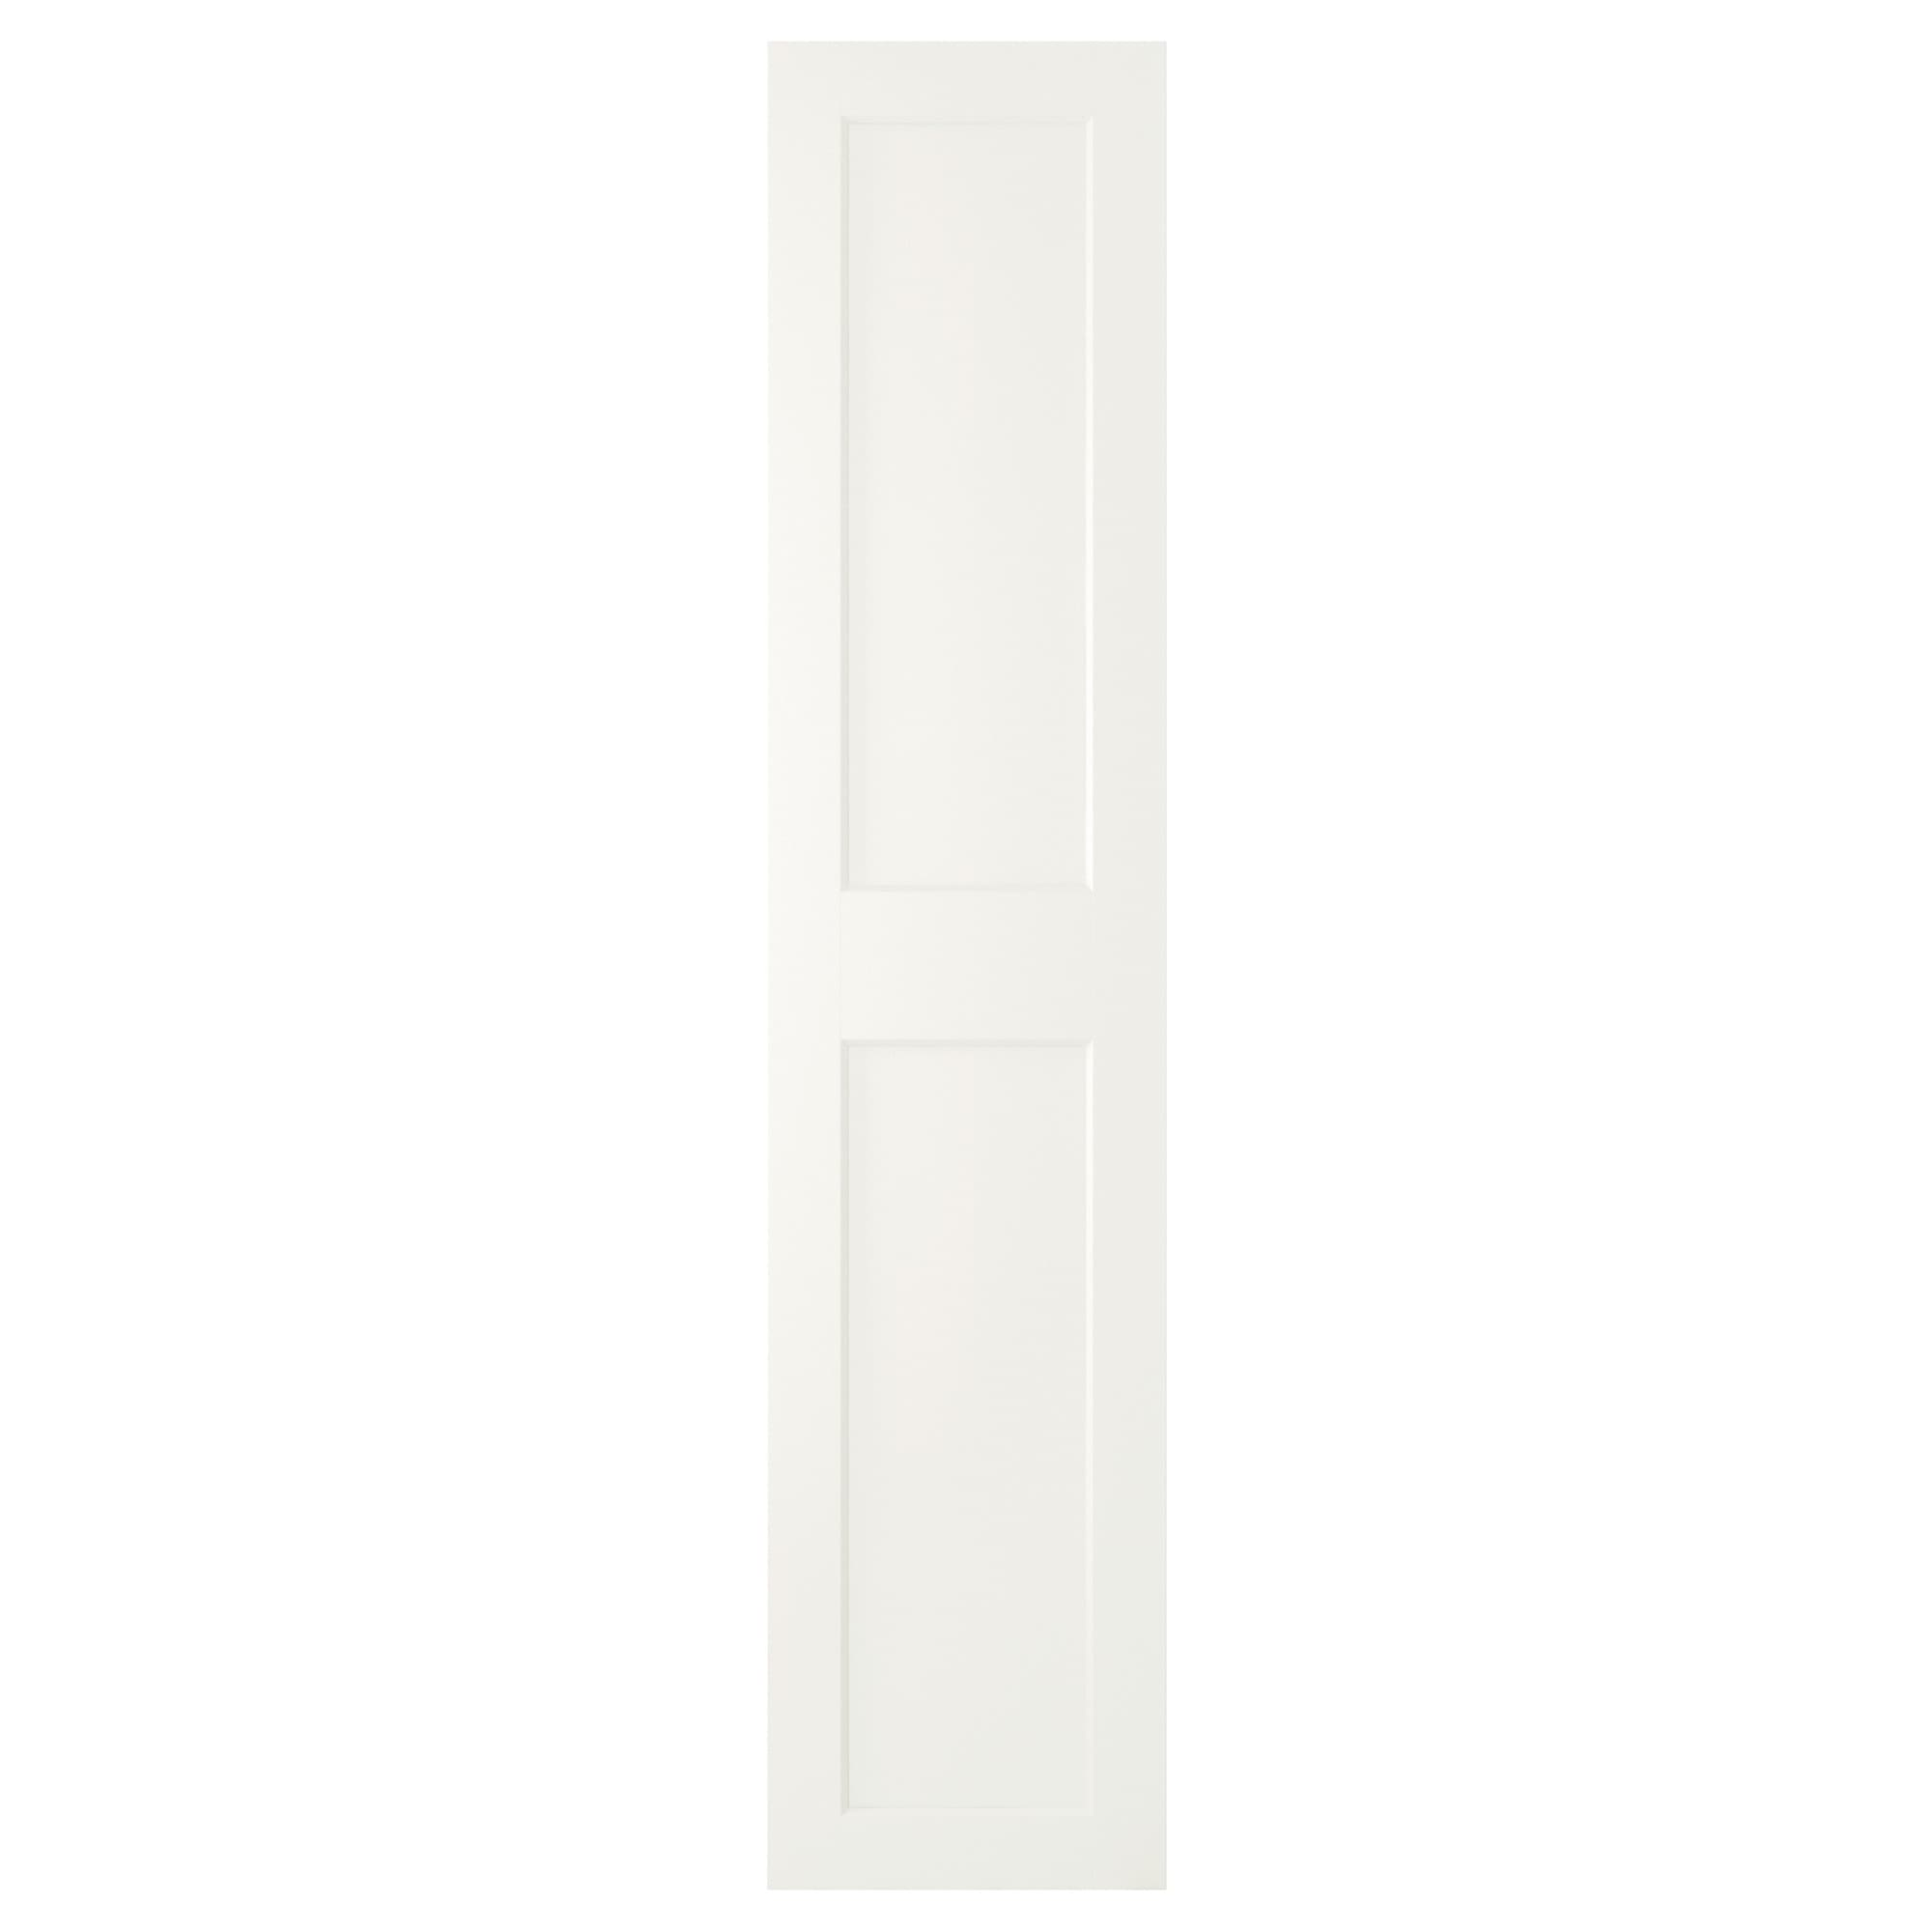 GRIMO Door with hinges, white